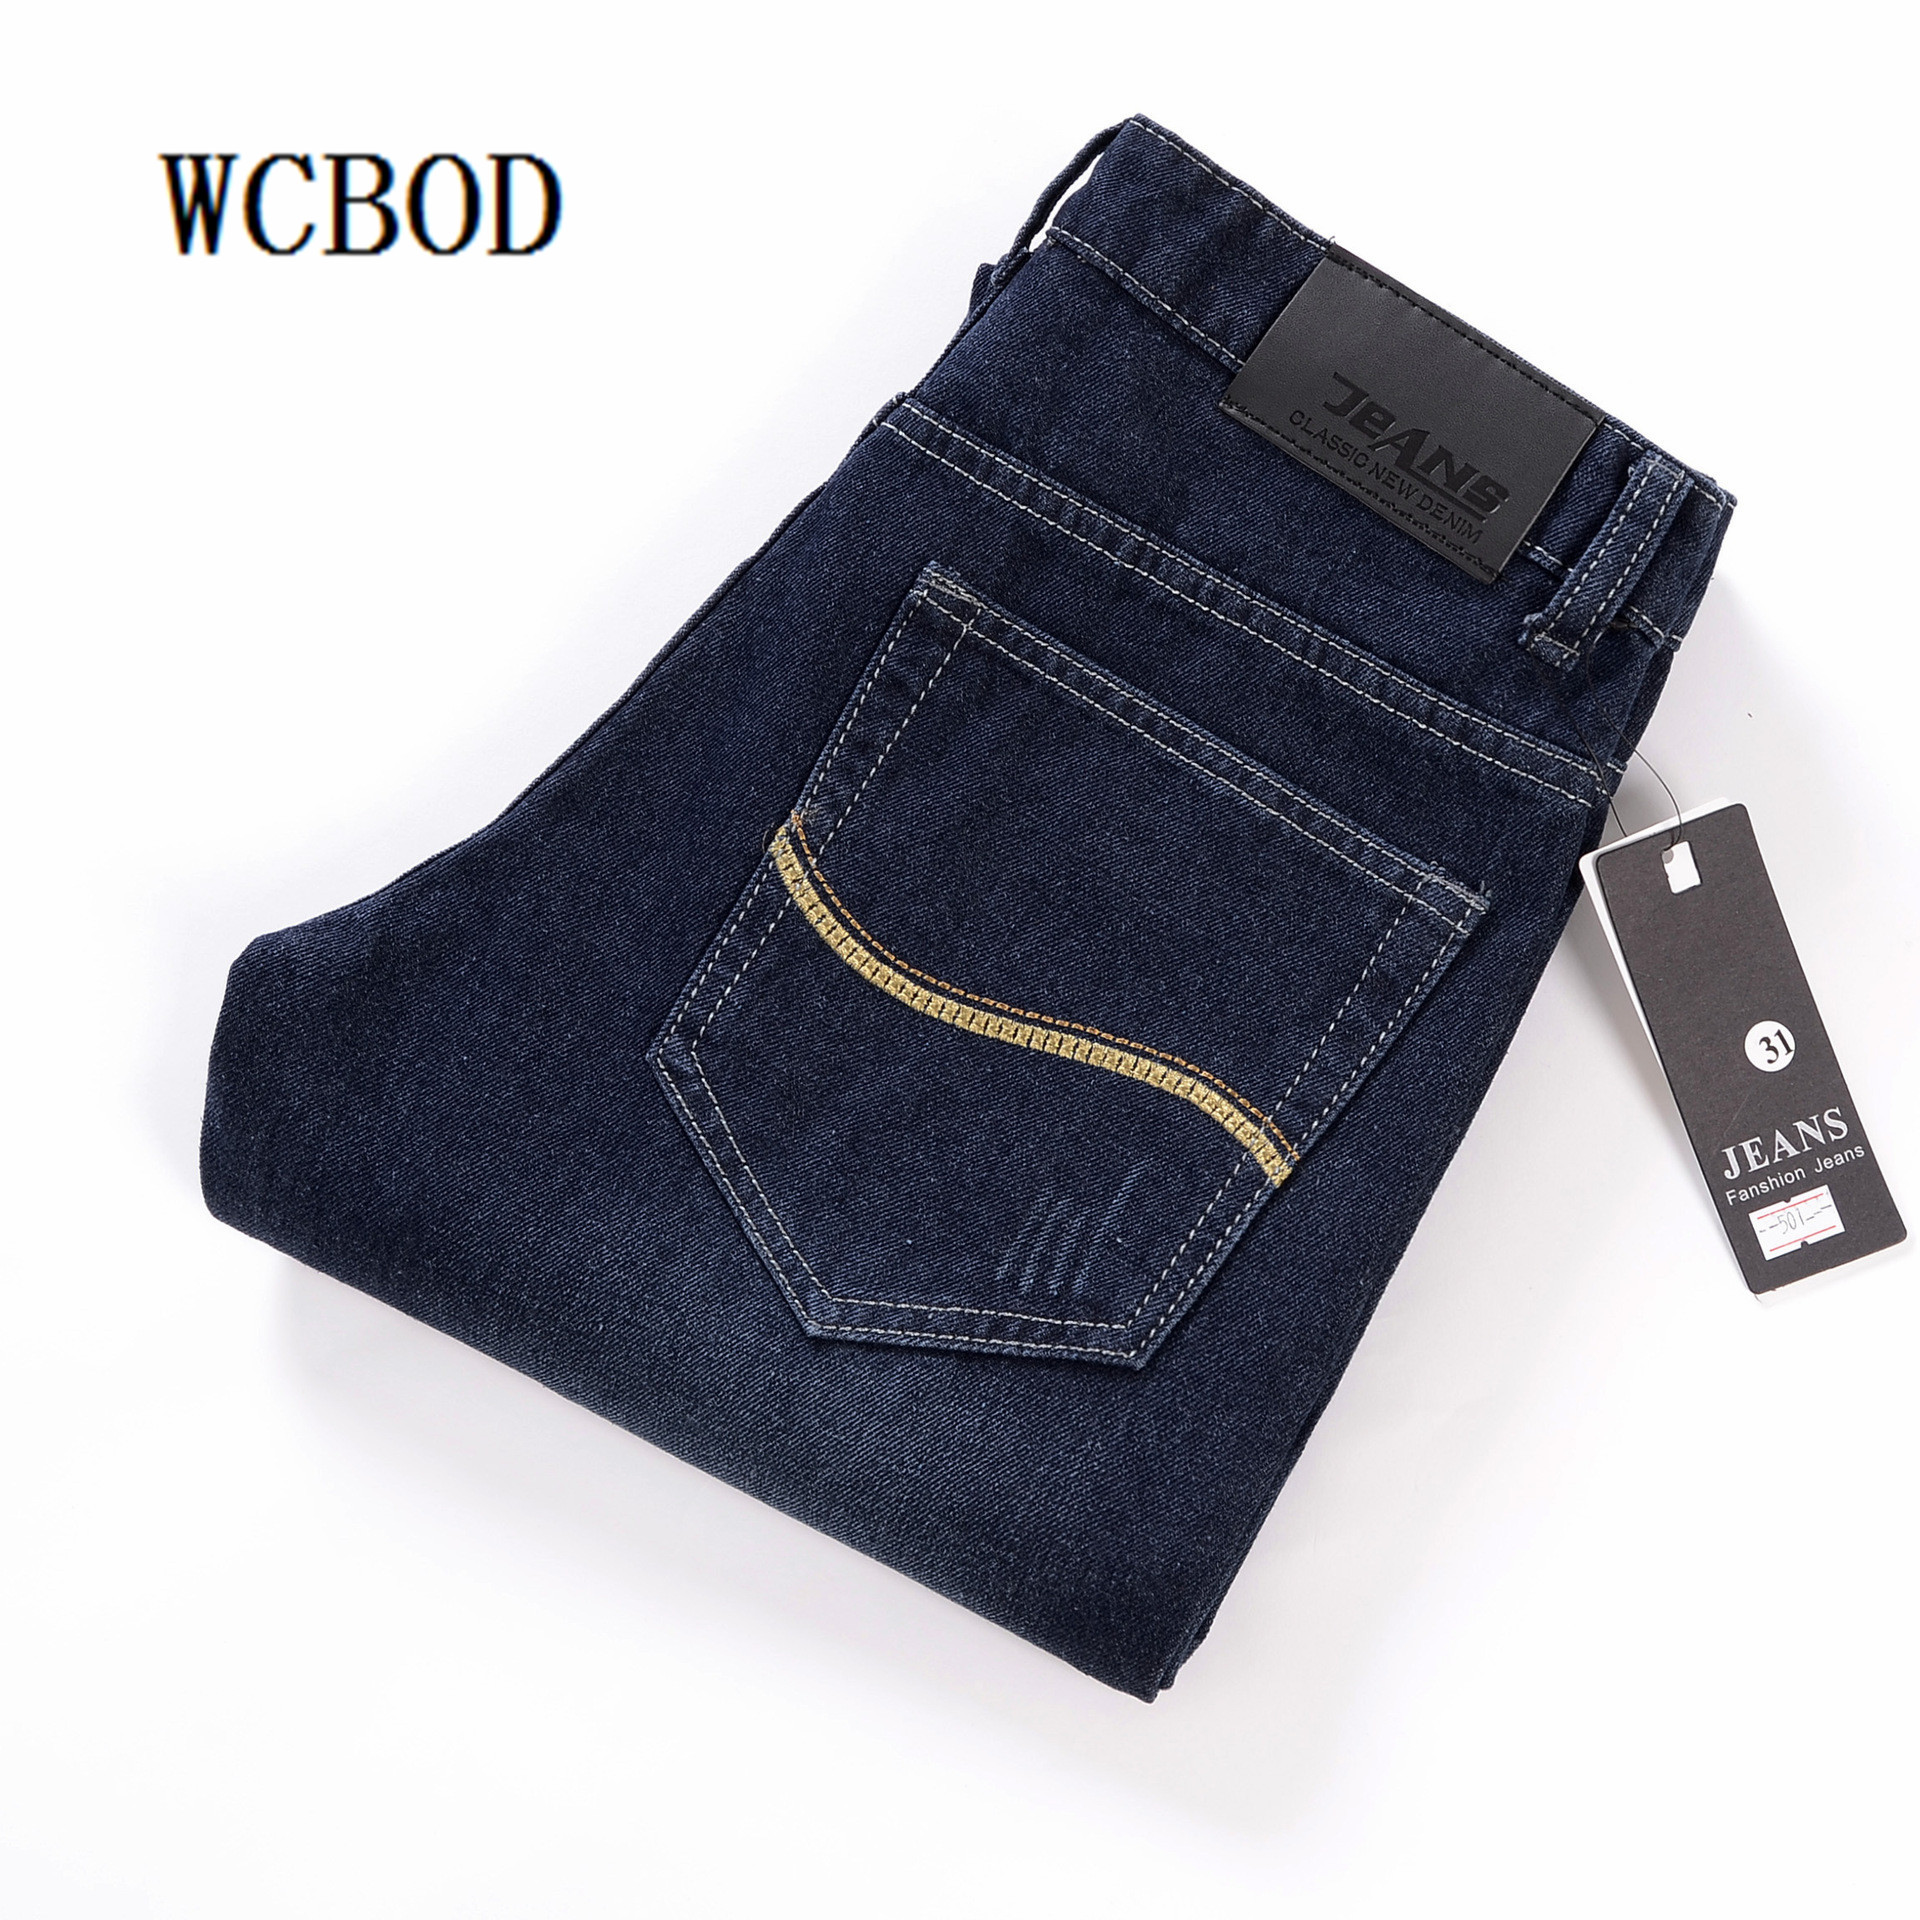 Loose Fit Trousers New Brand Menswear Pants Male Brand Casual Business Blue Trousers For Men Designer Brand Long Pants Jean